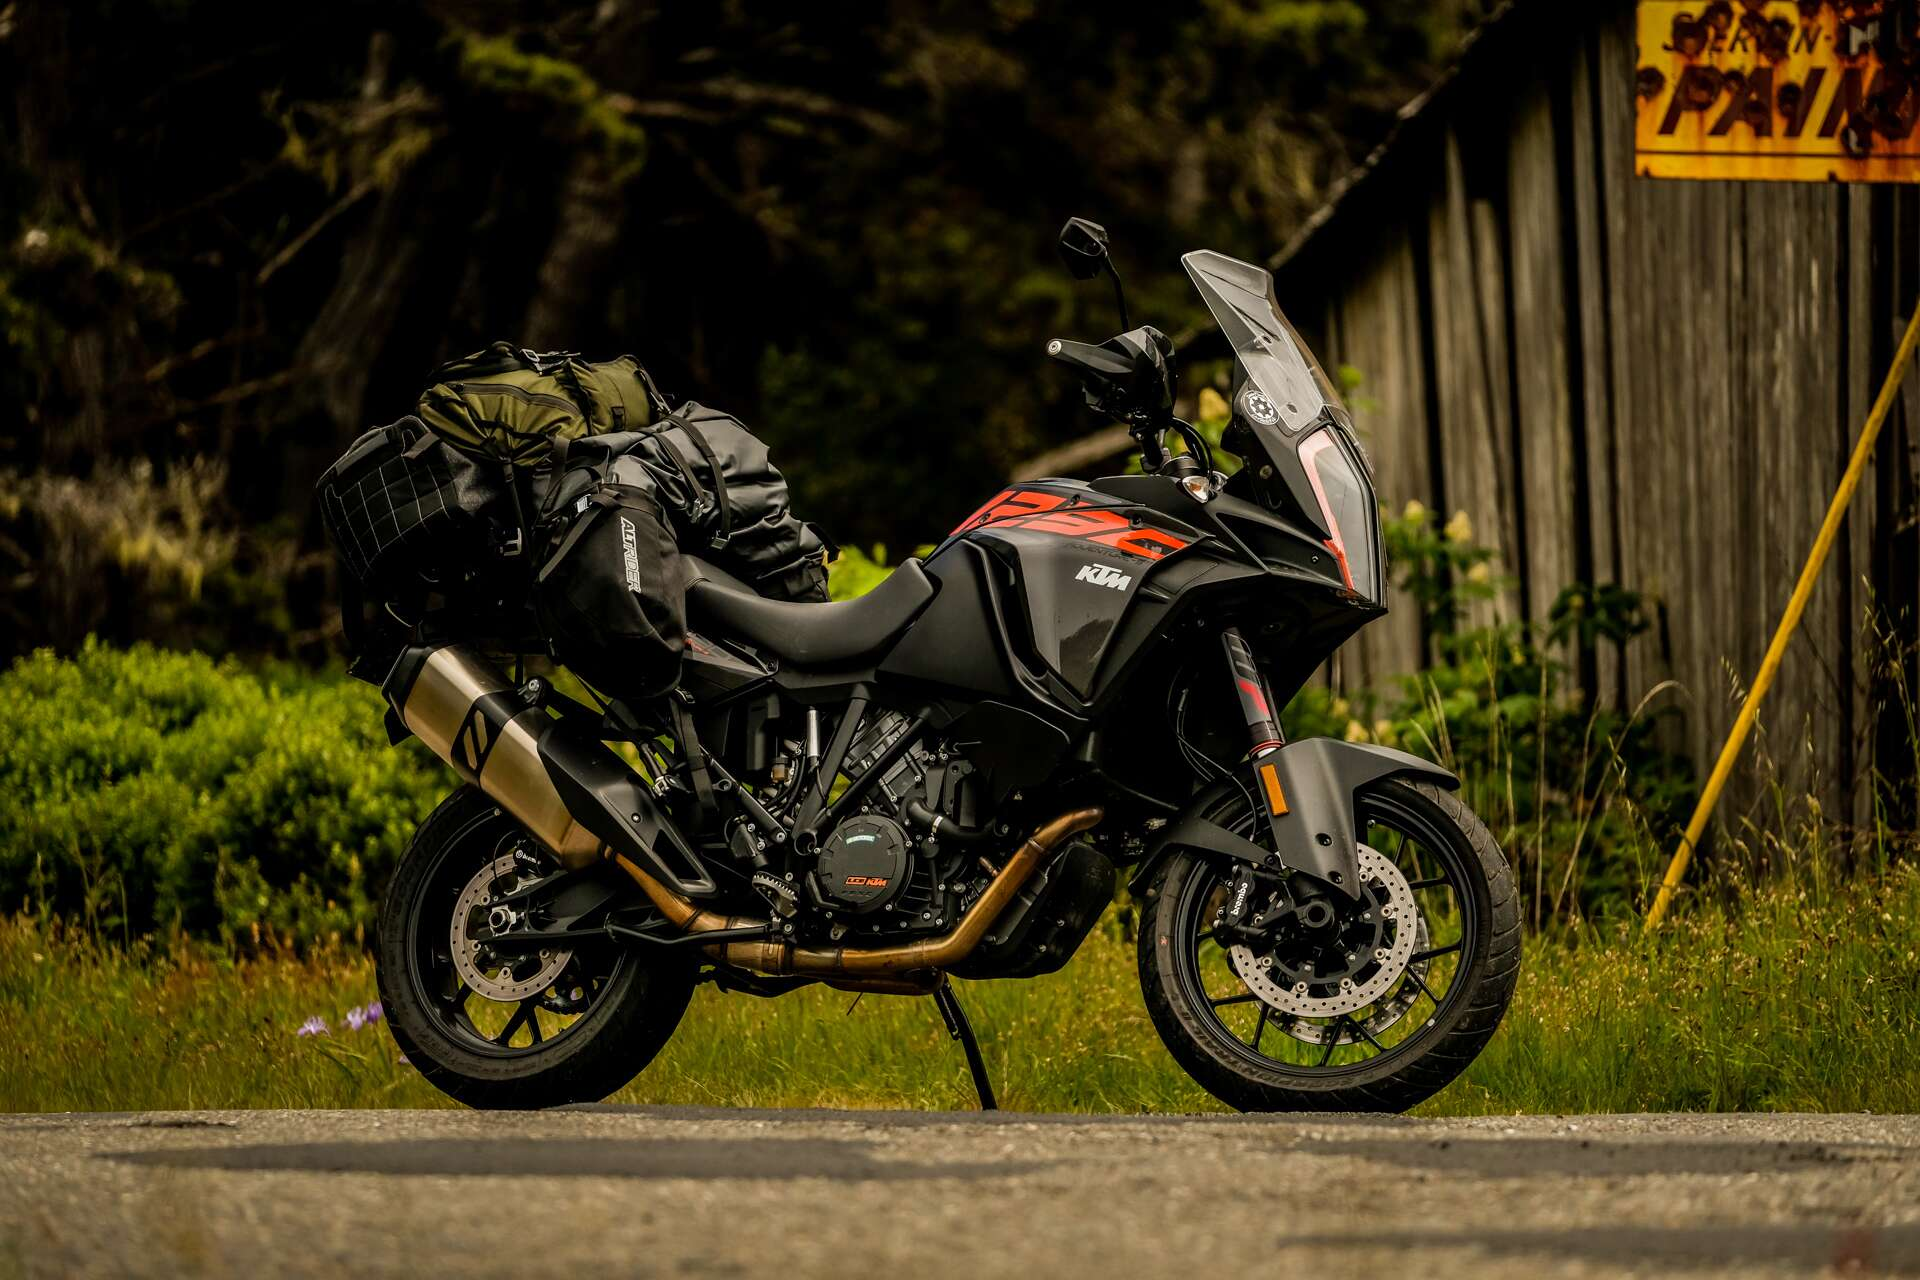 ktm 1290 super adventure s review paradise found on the only motorcycle you ll ever need the. Black Bedroom Furniture Sets. Home Design Ideas